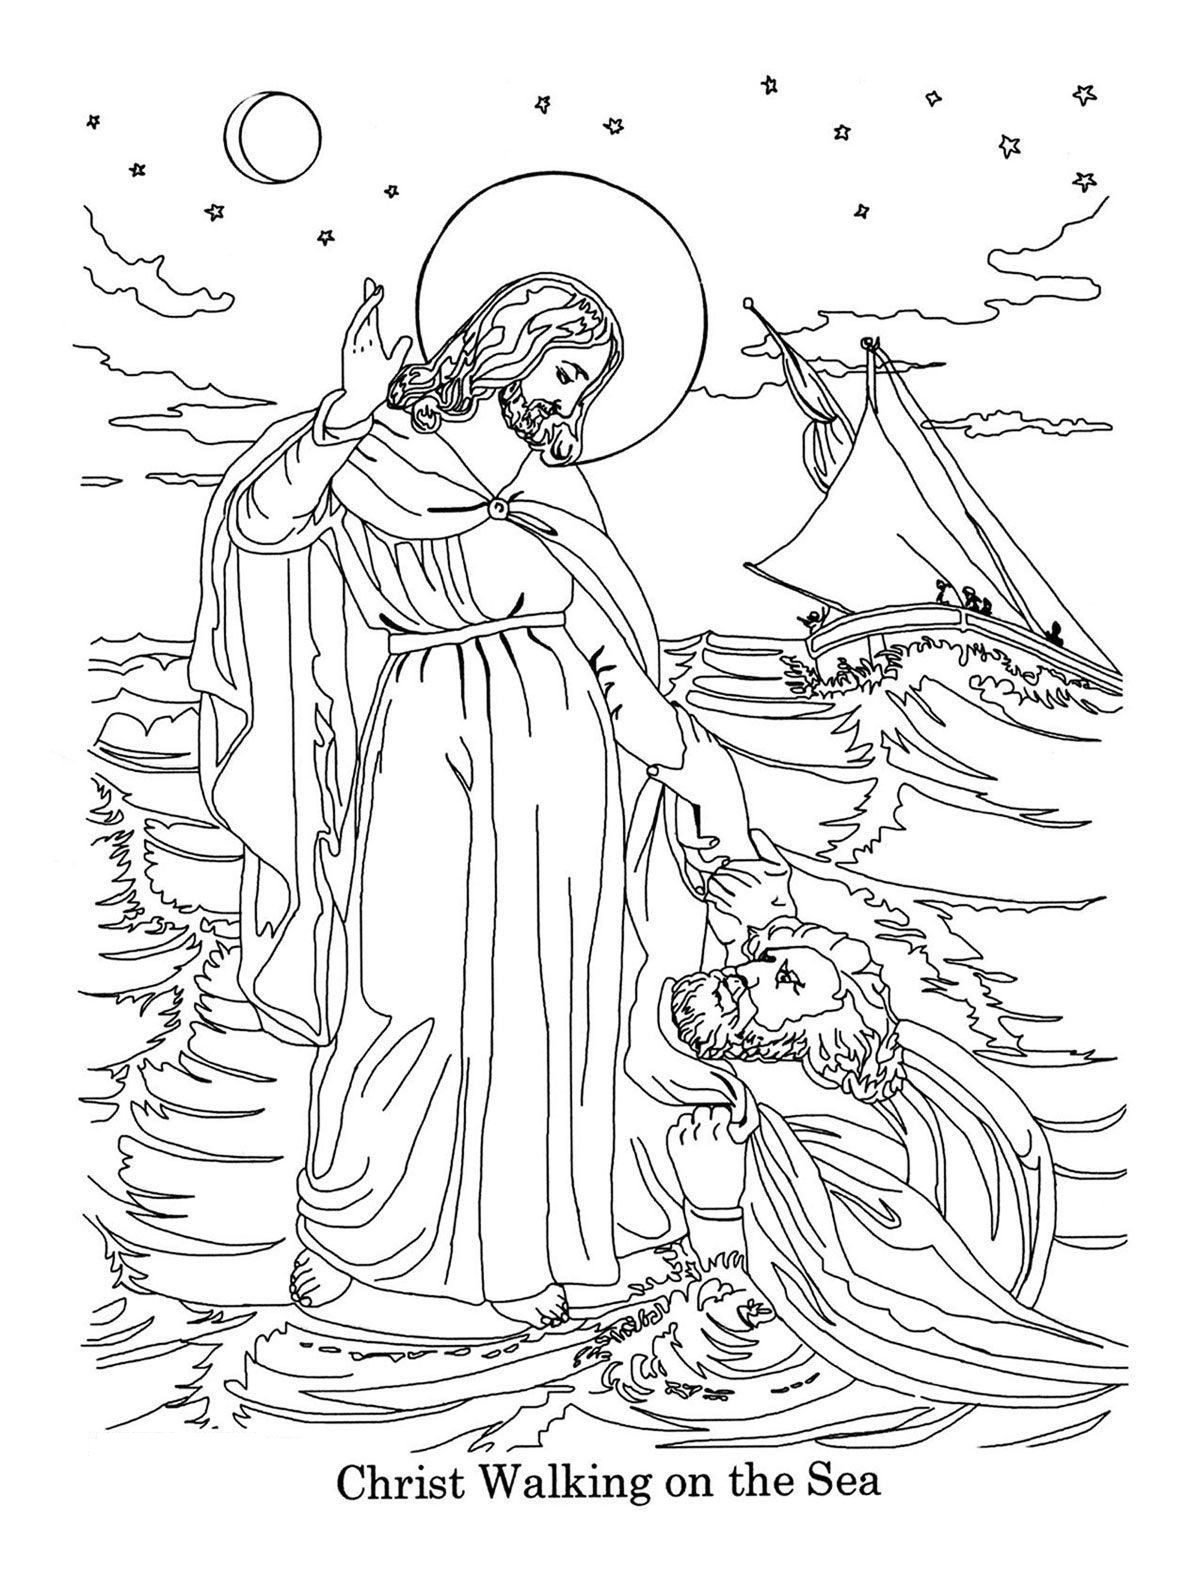 free printable bible coloring pages free printable bible history coloring pages free printable bible coloring pages